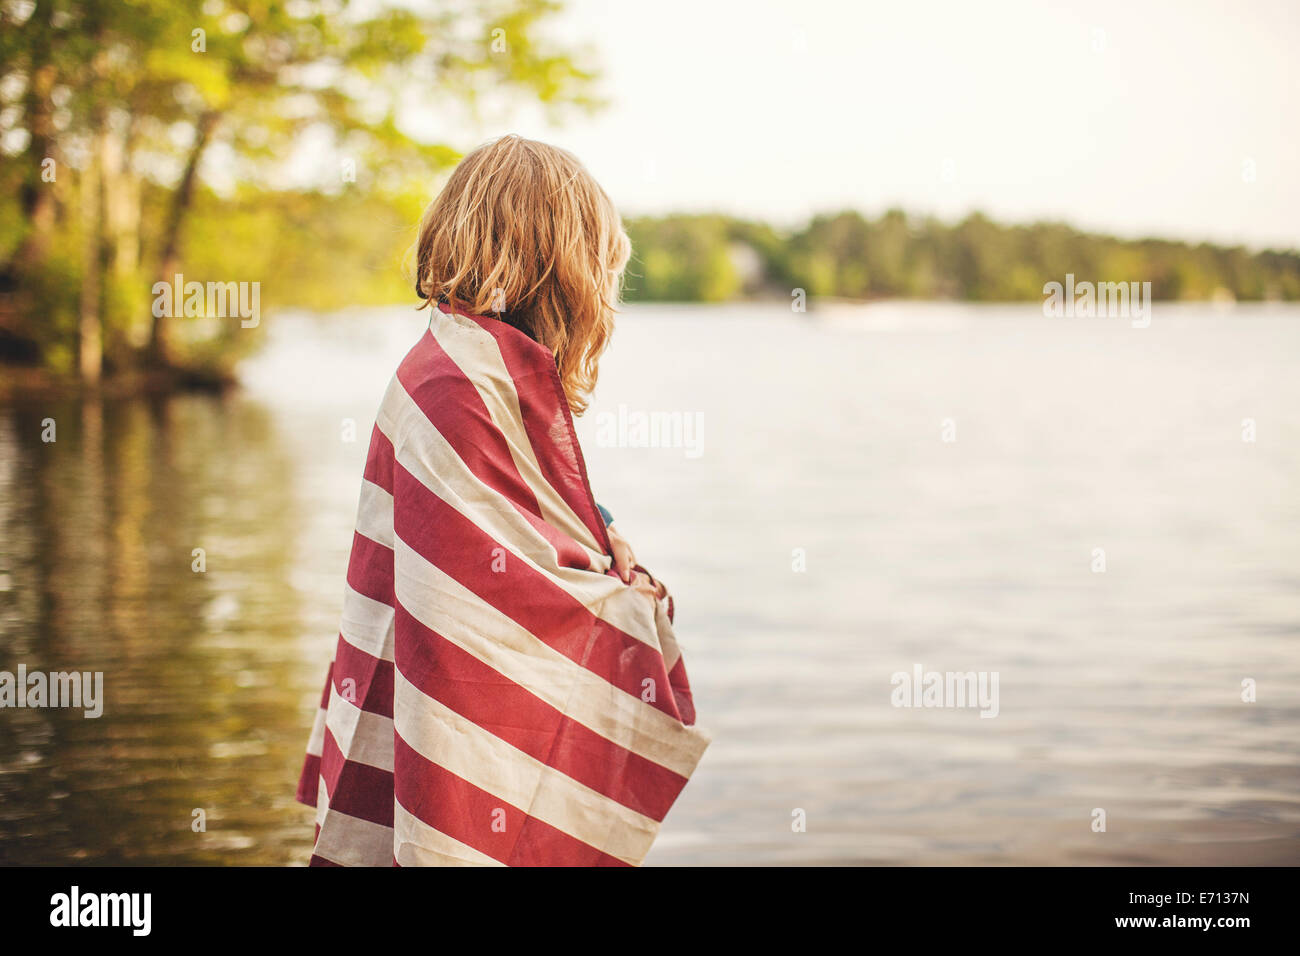 Young woman wrapped in red and white striped fabric - Stock Image